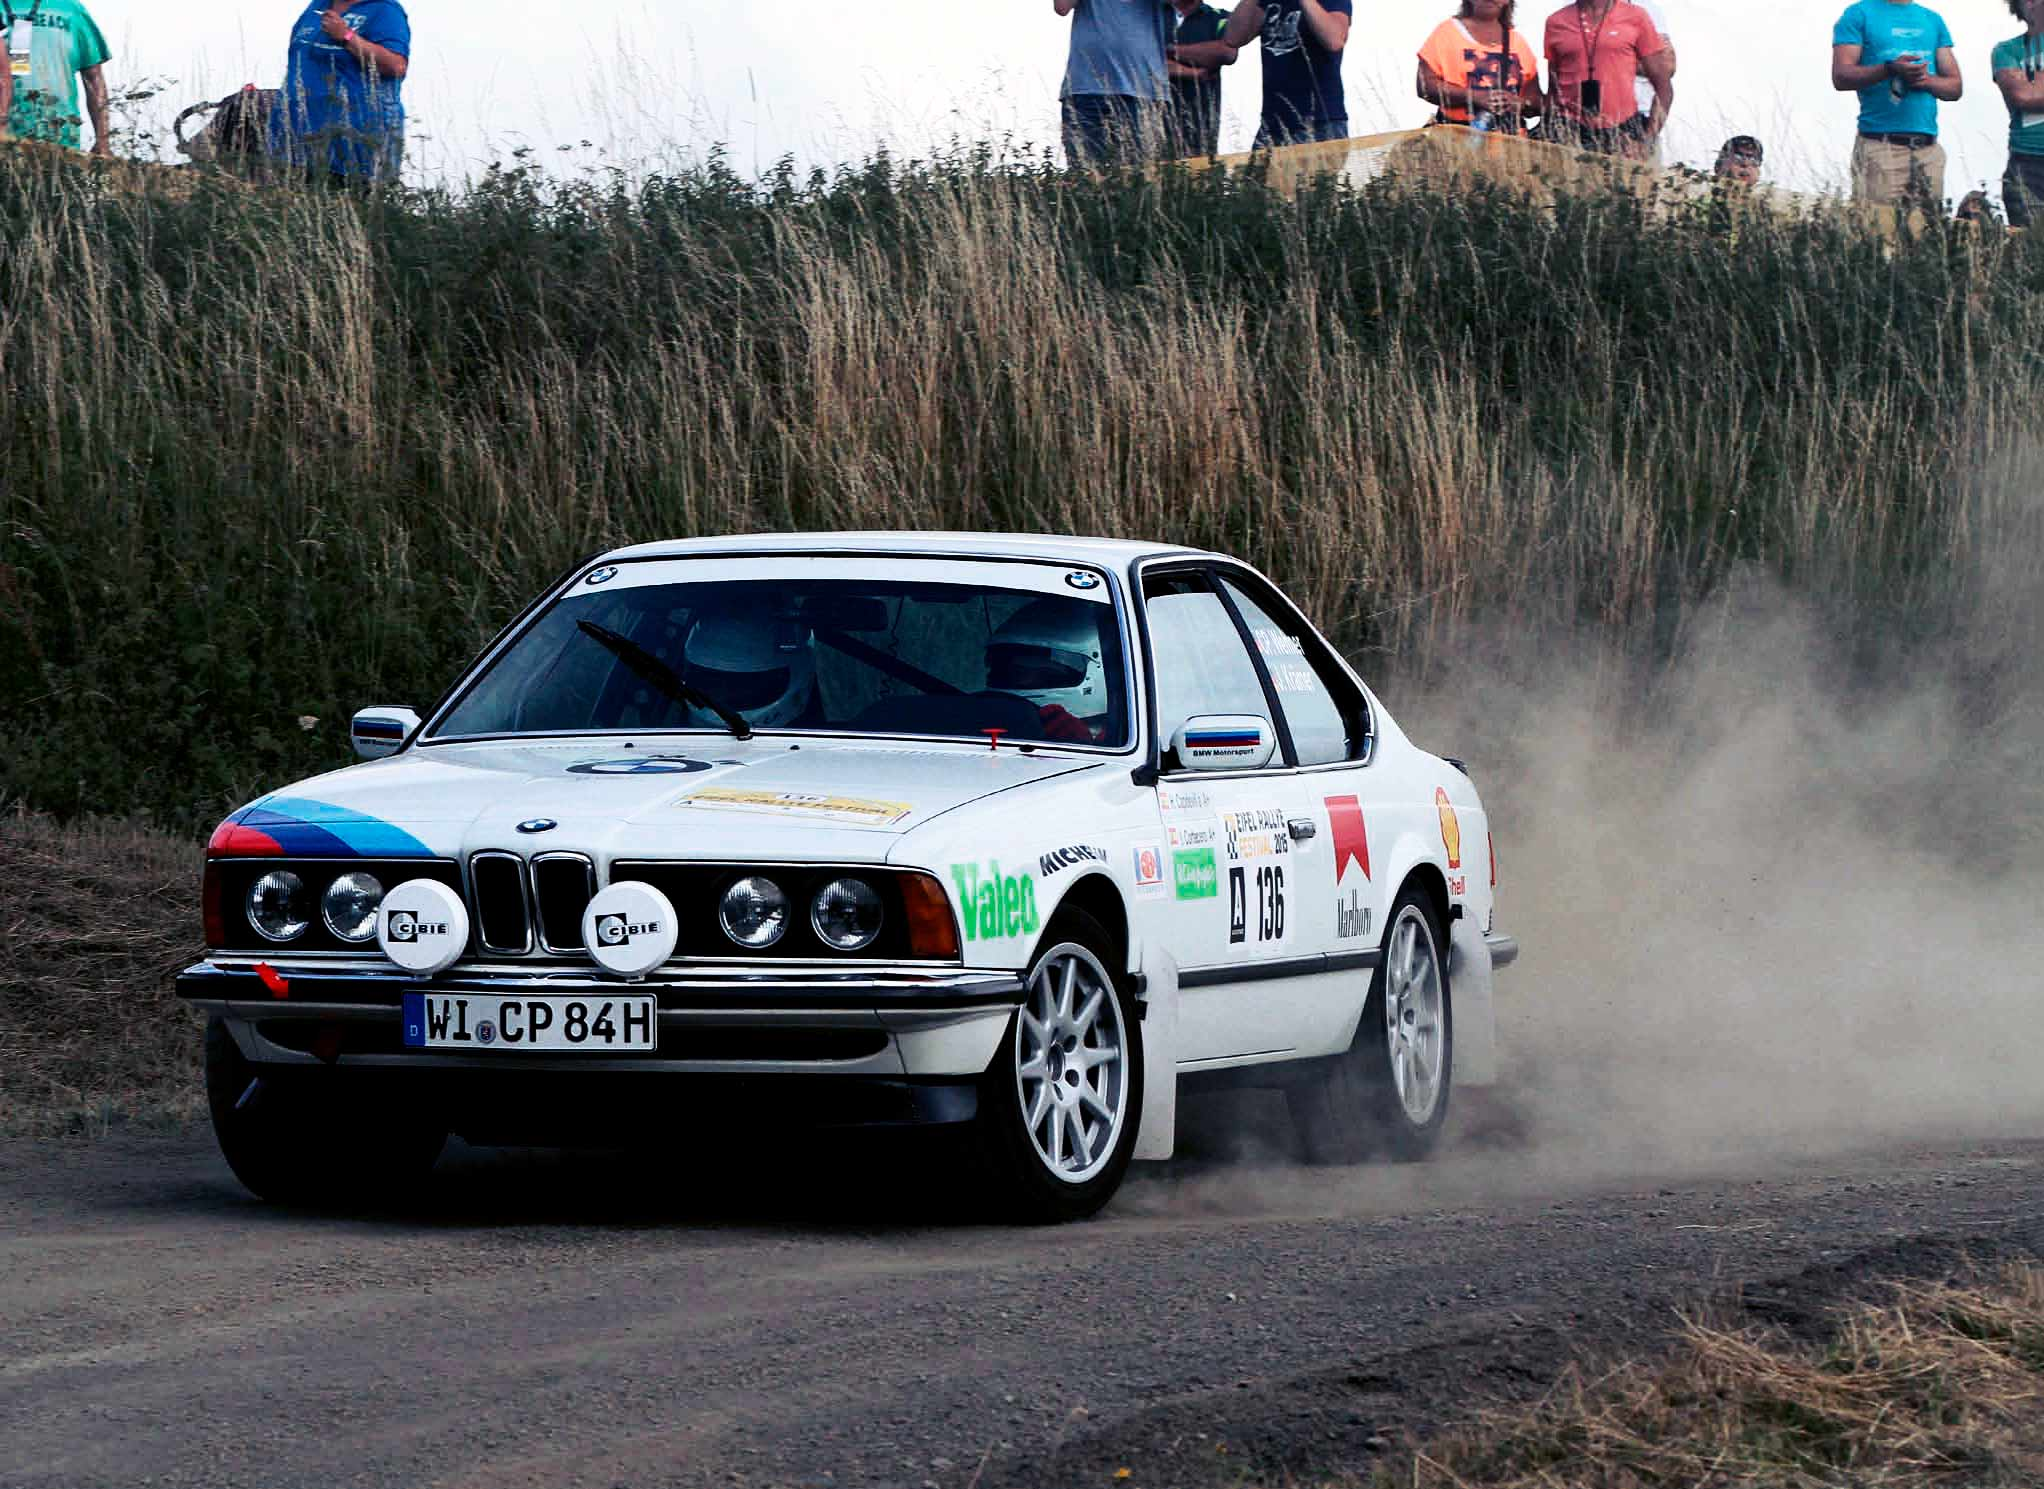 BMW 635CSi E24 Rally Car An Unusual Suspect - Drive-My Blogs - Drive